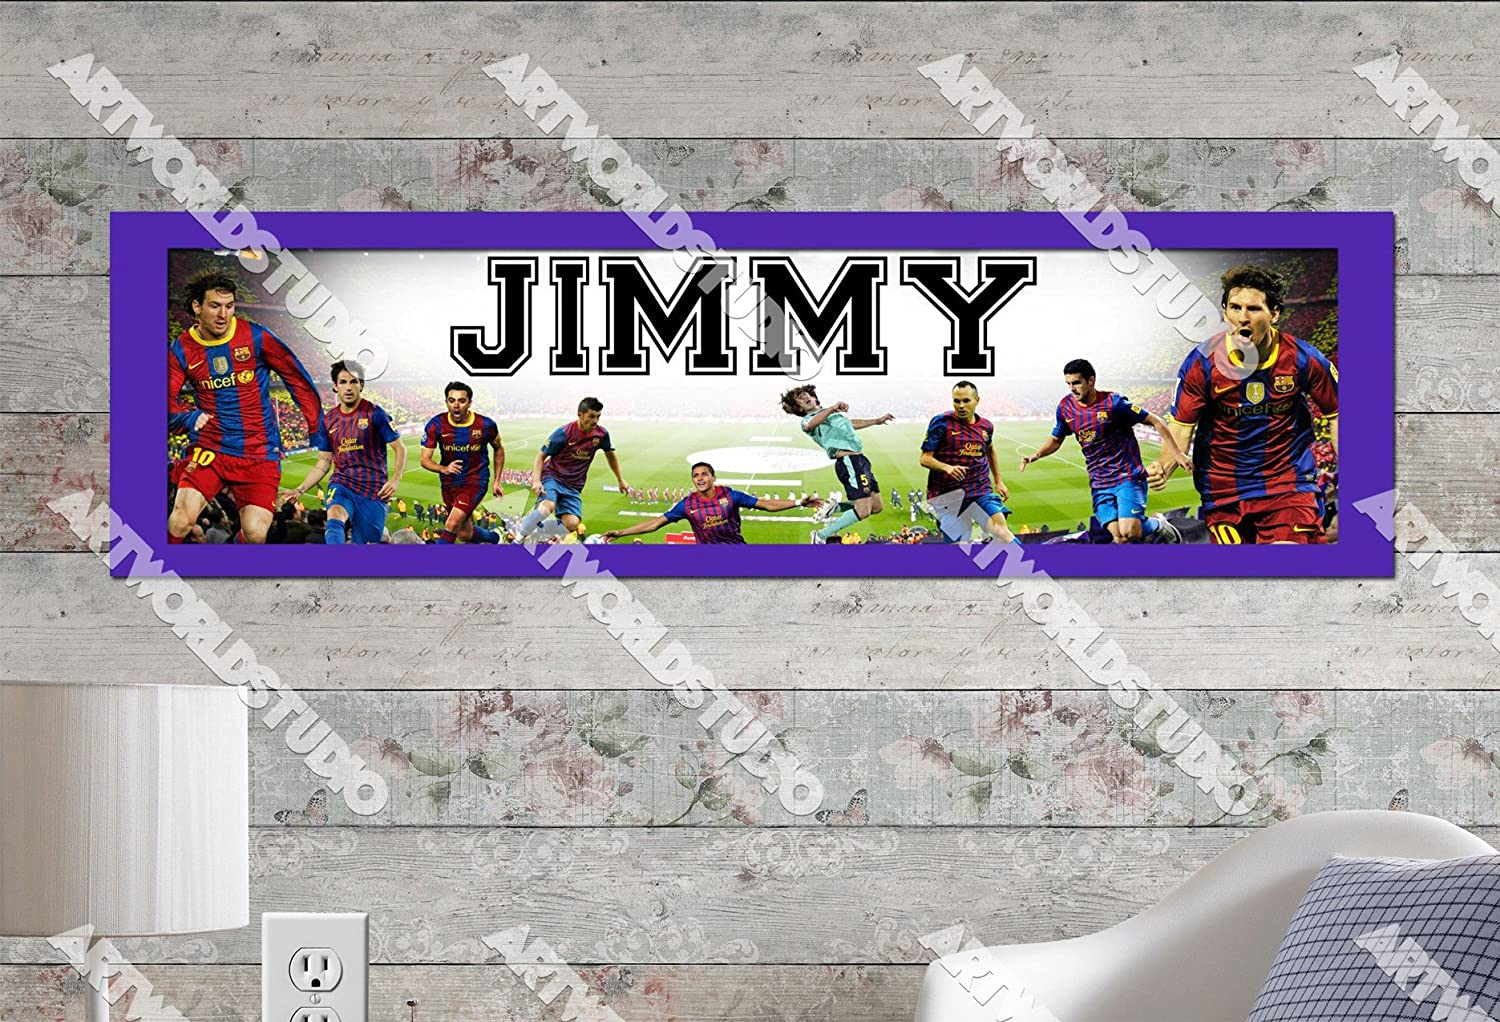 Personalized//Customized Chelsea Football Club Name Poster Wall Art Banner